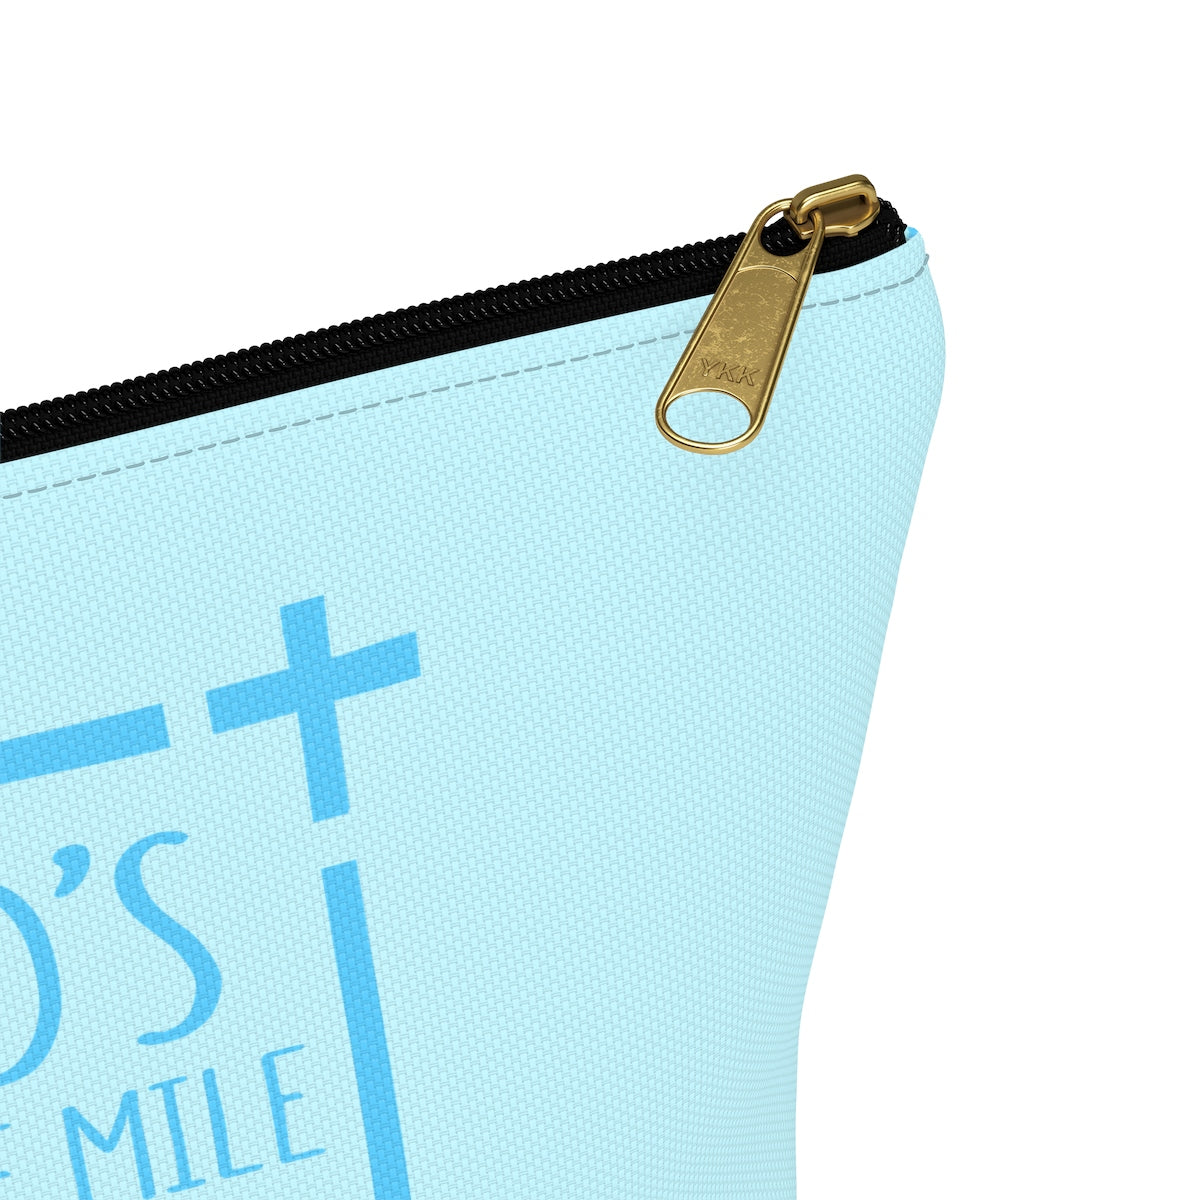 God's Square Mile Accessory Bag: Summer Breeze - GoGannon Designs